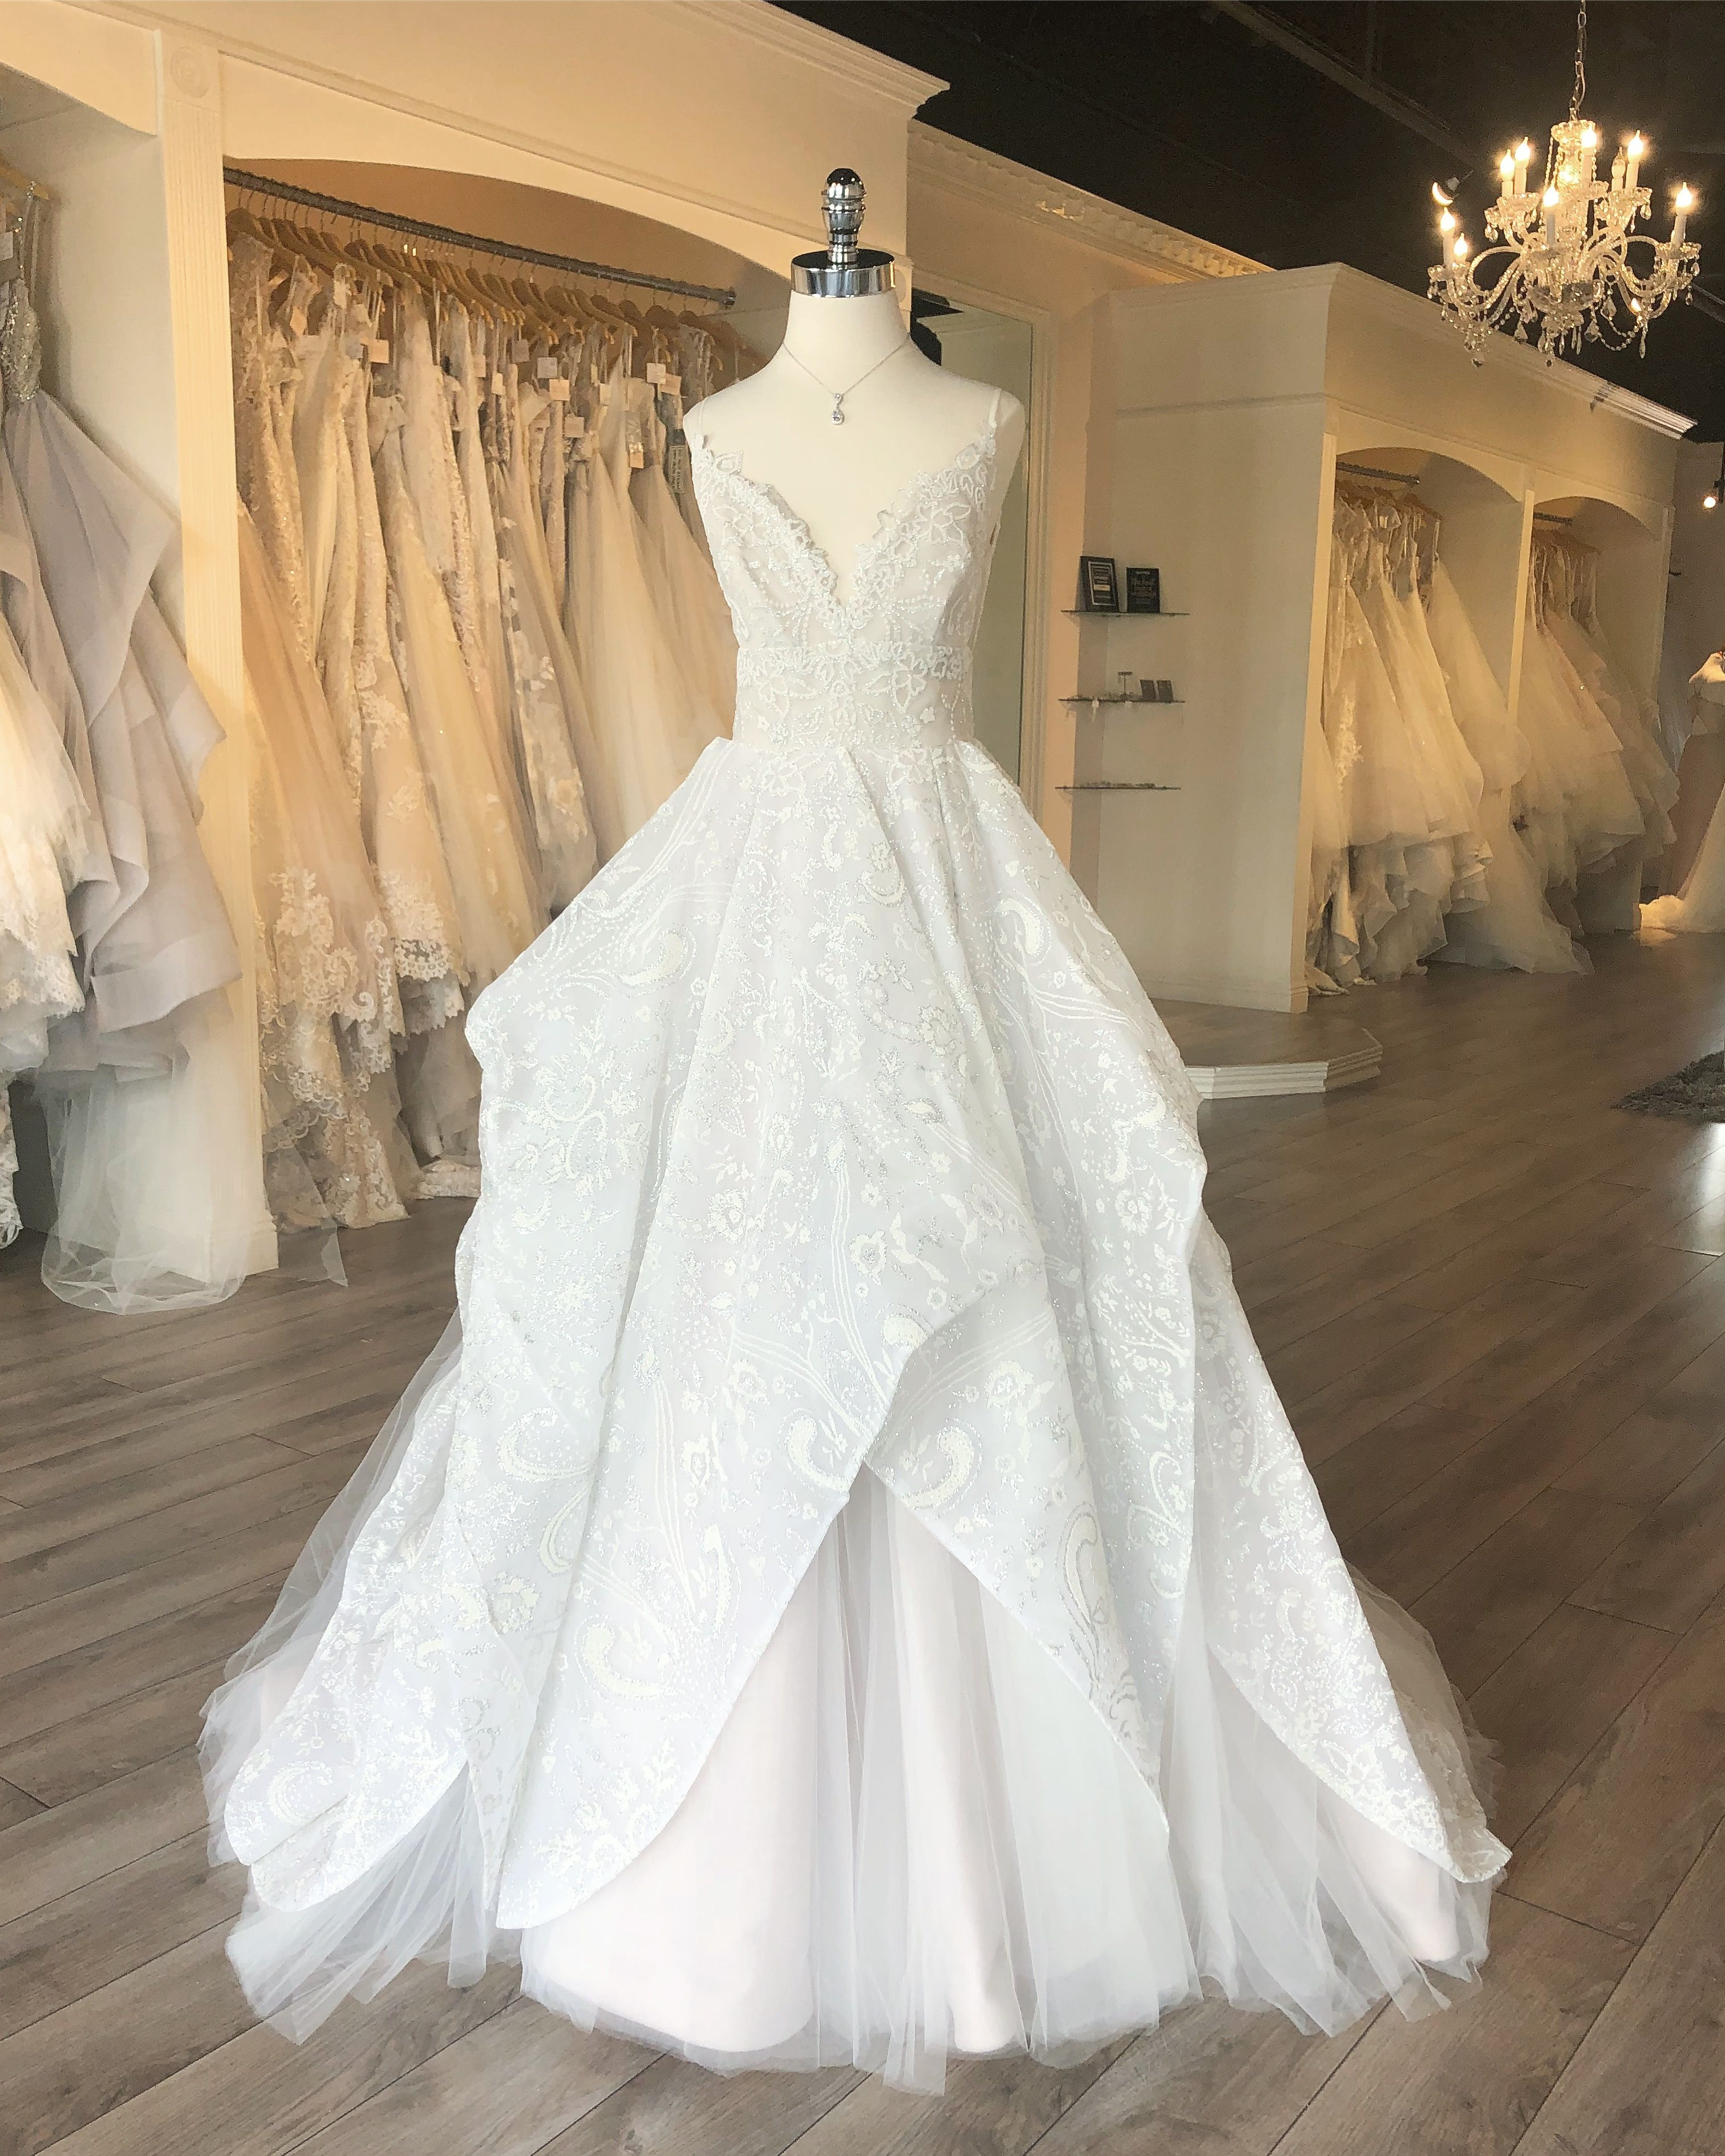 419ea2e2a9d New Fall 2018 Hayley Paige Markle Wedding Gown   Only at J Bridal Boutique  in Tucson